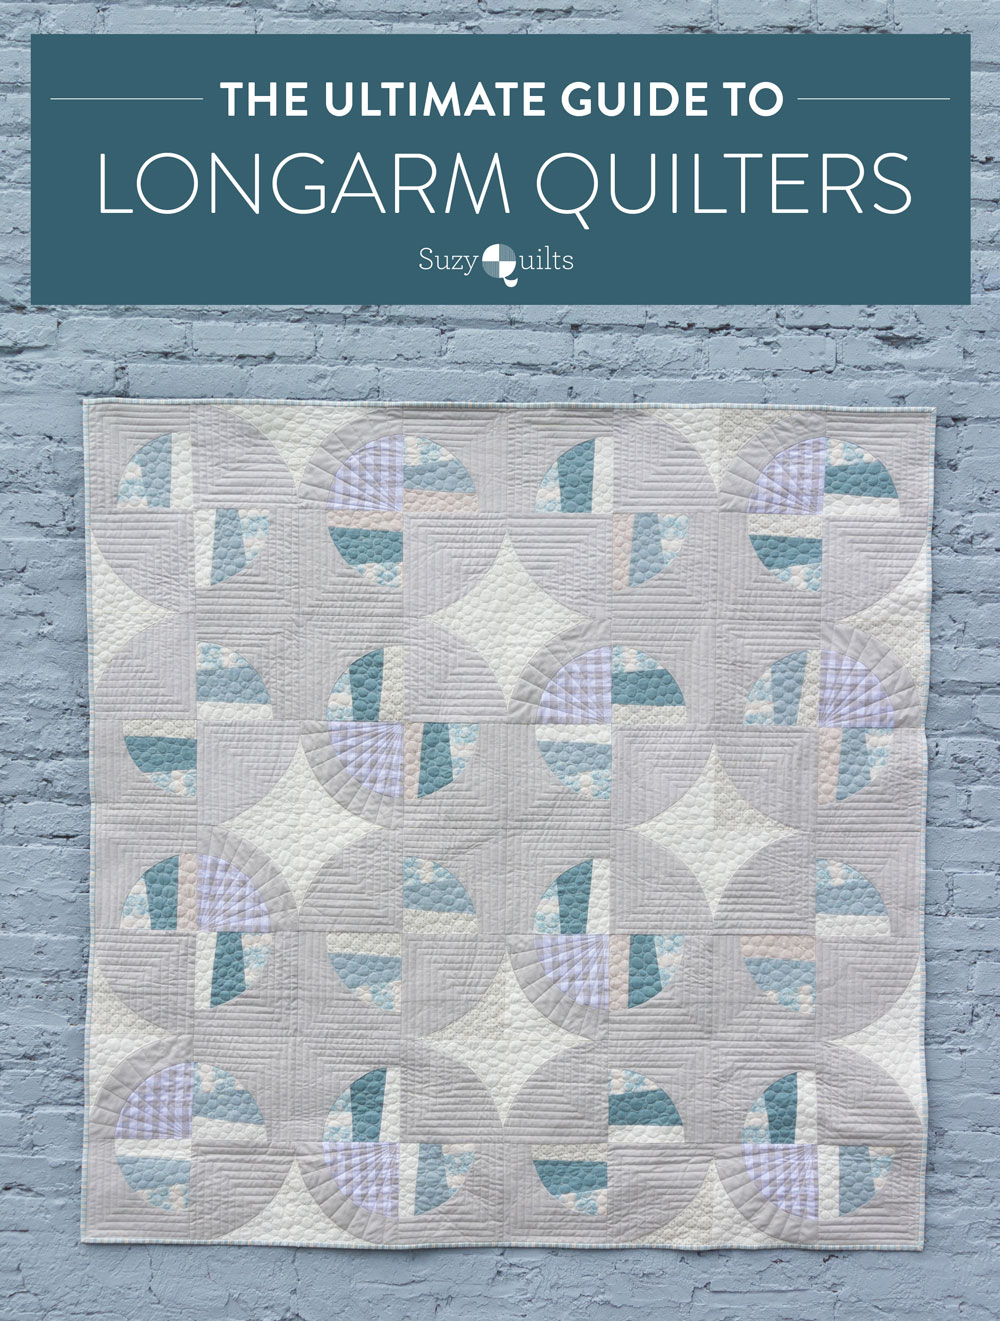 Your ultimate guide to longarm quilters in the USA and Canada. Find a quilter in your local area, or one that takes mail-in orders.